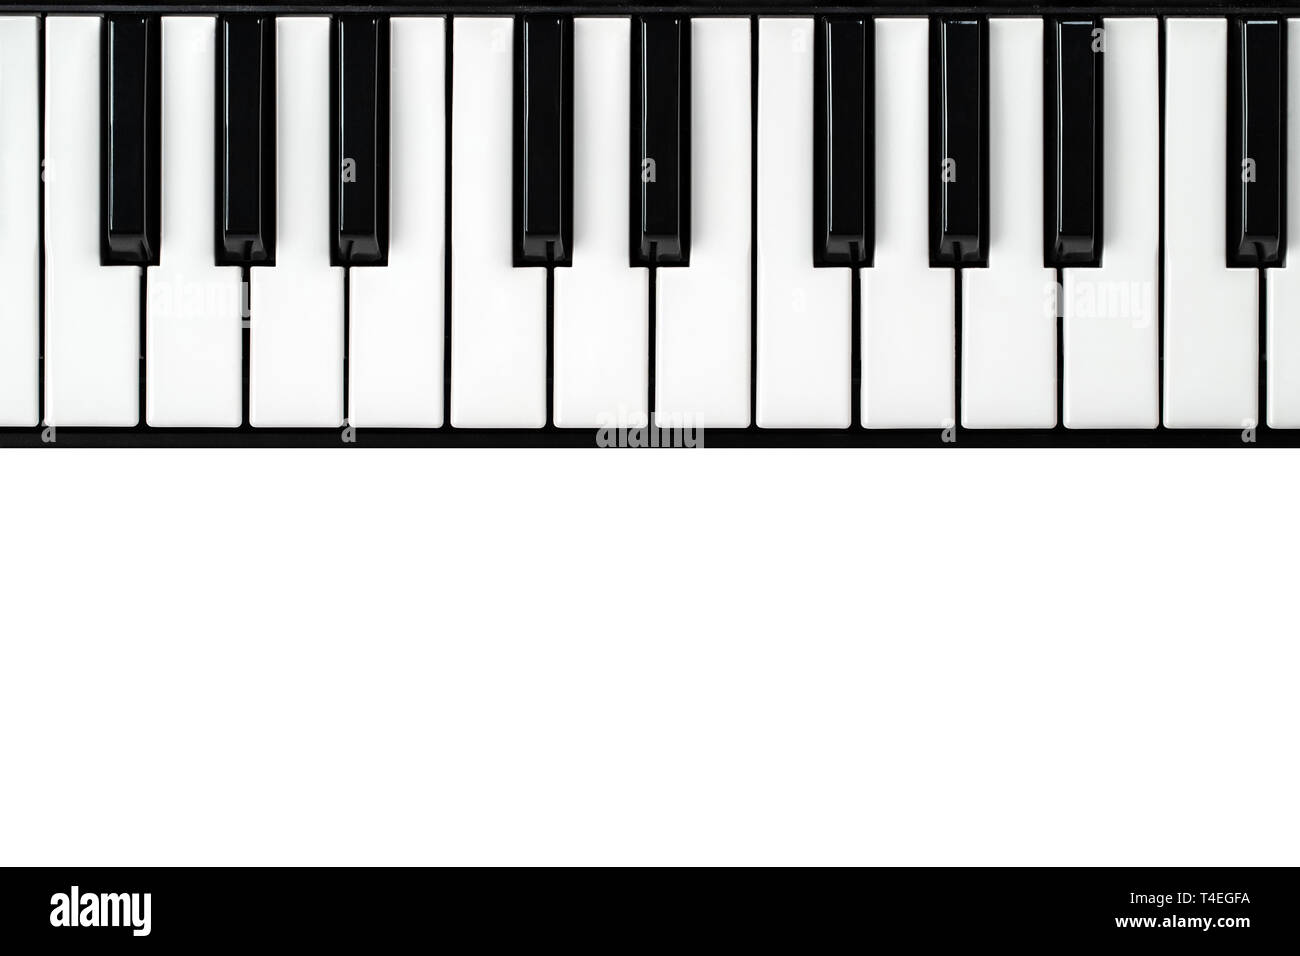 synthesizer keyboard on isolated white background with empty space for text. - Stock Image